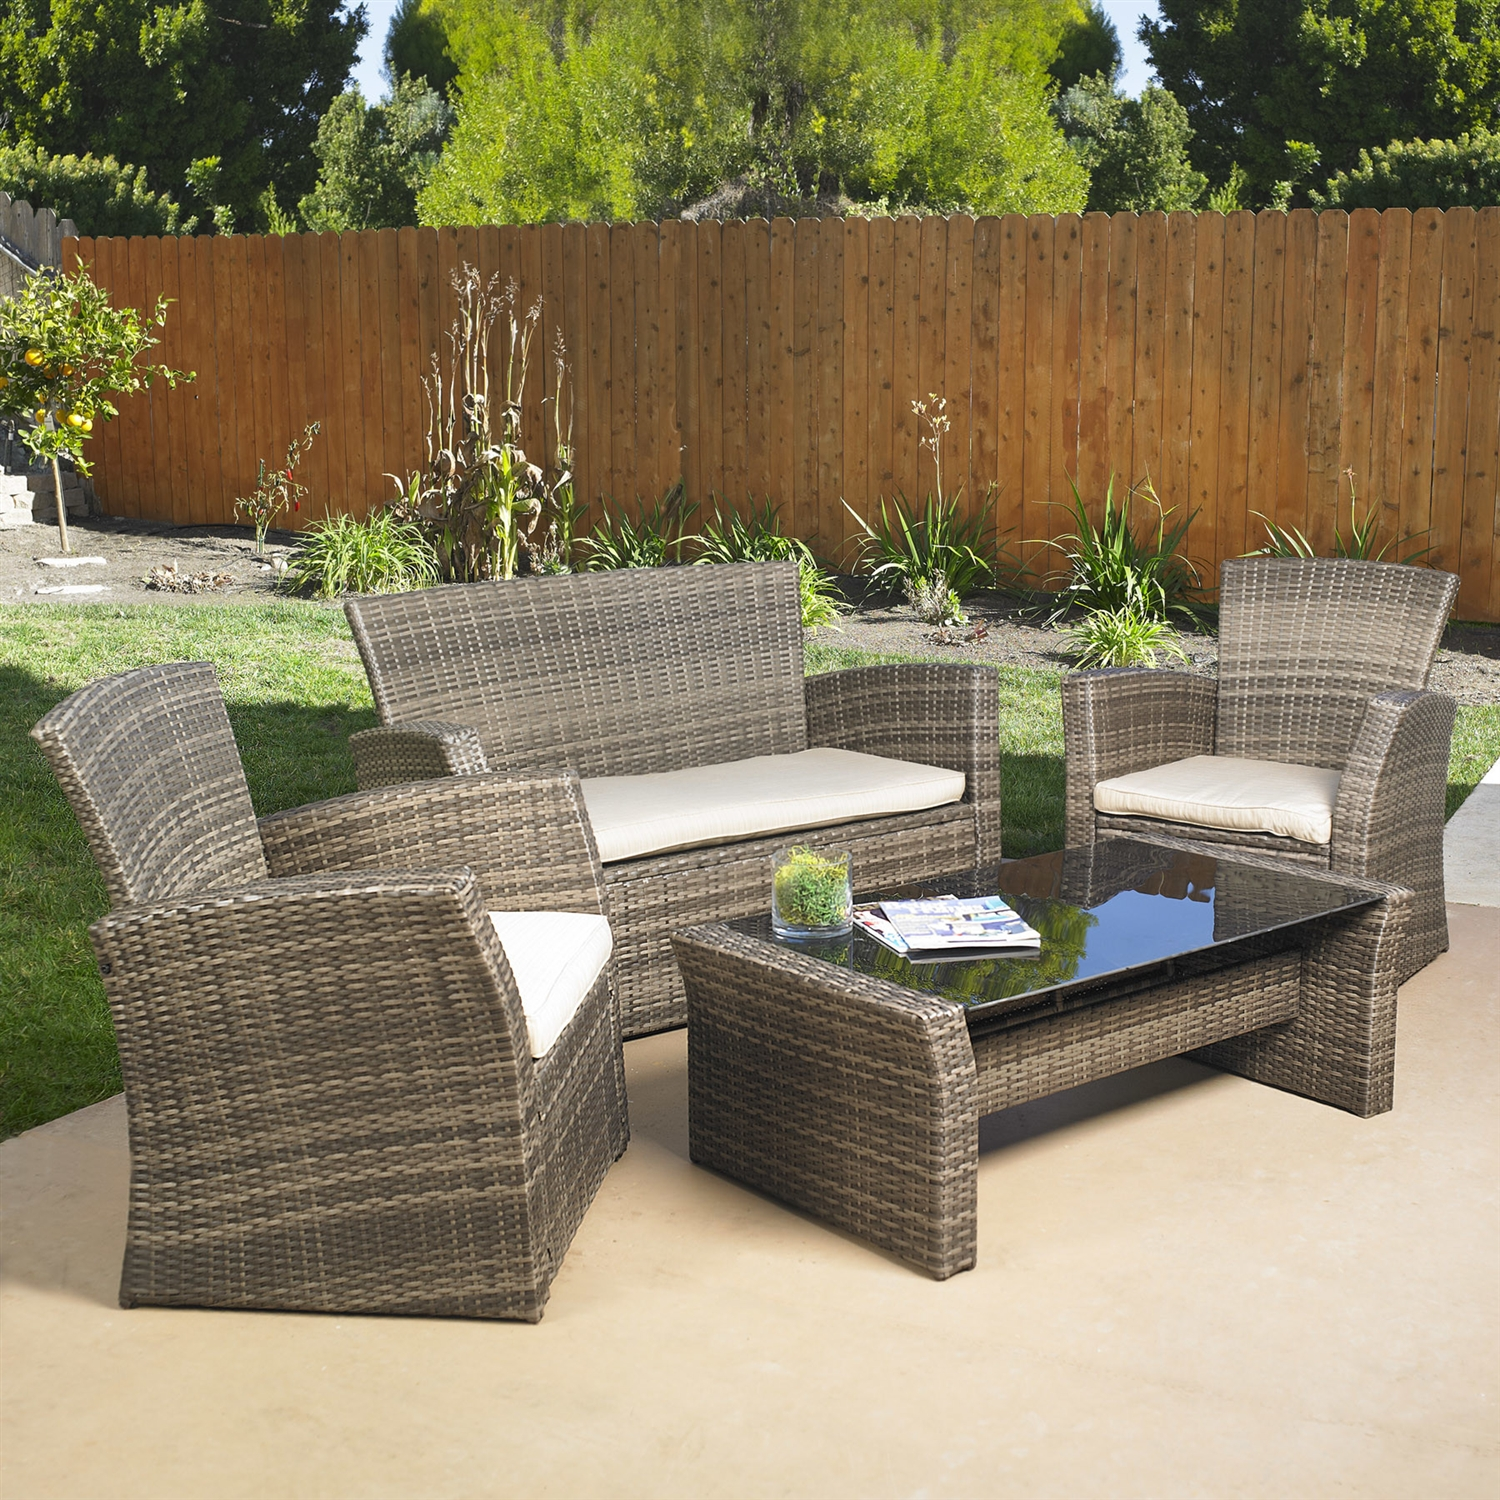 4-Piece Outdoor Weather Resistant Wicker Resin Patio Furniture Set with Cushions, M4PLS74375 :  This 4-Piece Outdoor Weather Resistant Wicker Resin Patio Furniture Set with Cushions would be a great addition to your home. It is stylish and easy to clean and is for indoor or outdoor use.  Coffee table offers versatility and class with its glass top; Weather Resistant Details: Weather resistant; Detachable Cushion: Yes; Assembly Required: Yes; Product Warranty: 5 year limited; Frame Material: Aluminum Woven; Material: Resin wicker; Woven: Yes; Upholstery Material: Sunbrella  Welt on Cushions: Yes; Cushion Fill Material: Polyester; Frame Finish: Dark brown; Individual Chair Weight Capacity: 250lbs. Included: 2 Club chairs, Loveseat, Coffee table; Product Care: Cleans up easily with a damp cloth; Country of Manufacture: China. Seat Cushion Depth: Loveseat: 22.5 Inches; Seat Cushion Depth: Chair: 21 Inches; Seat Cushion Width: Loveseat: 44 Inches; Seat Cushion Width: Chair: 22 Inches; Seat Cushion Thickness: Loveseat: 2.5 Inches; Seat Cushion Thickness: Chair: 2.5 Inches.